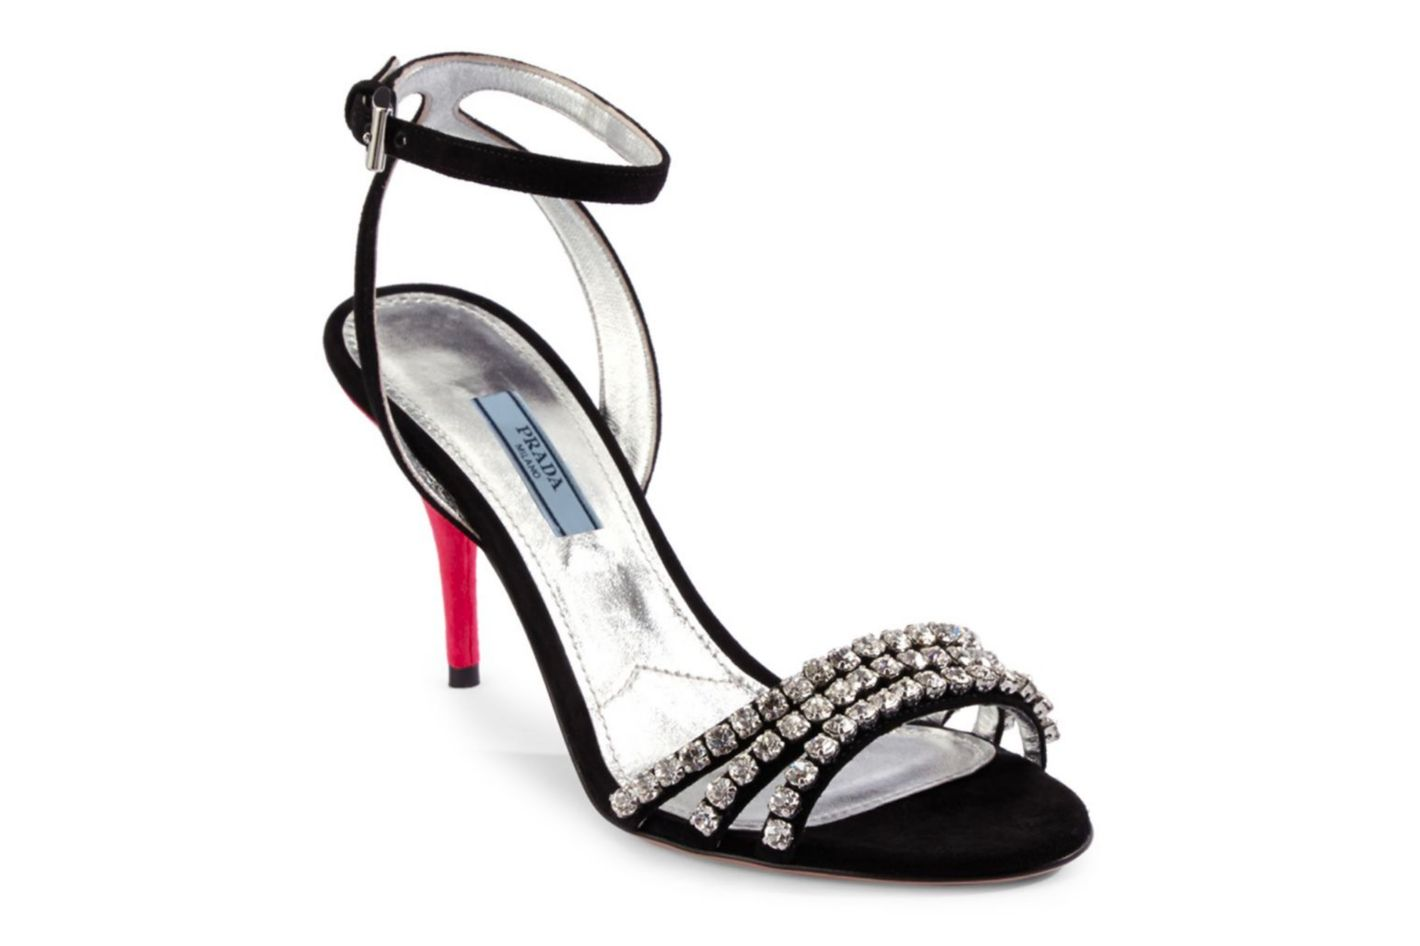 Prada Jeweled Suede Ankle-Strap Sandals